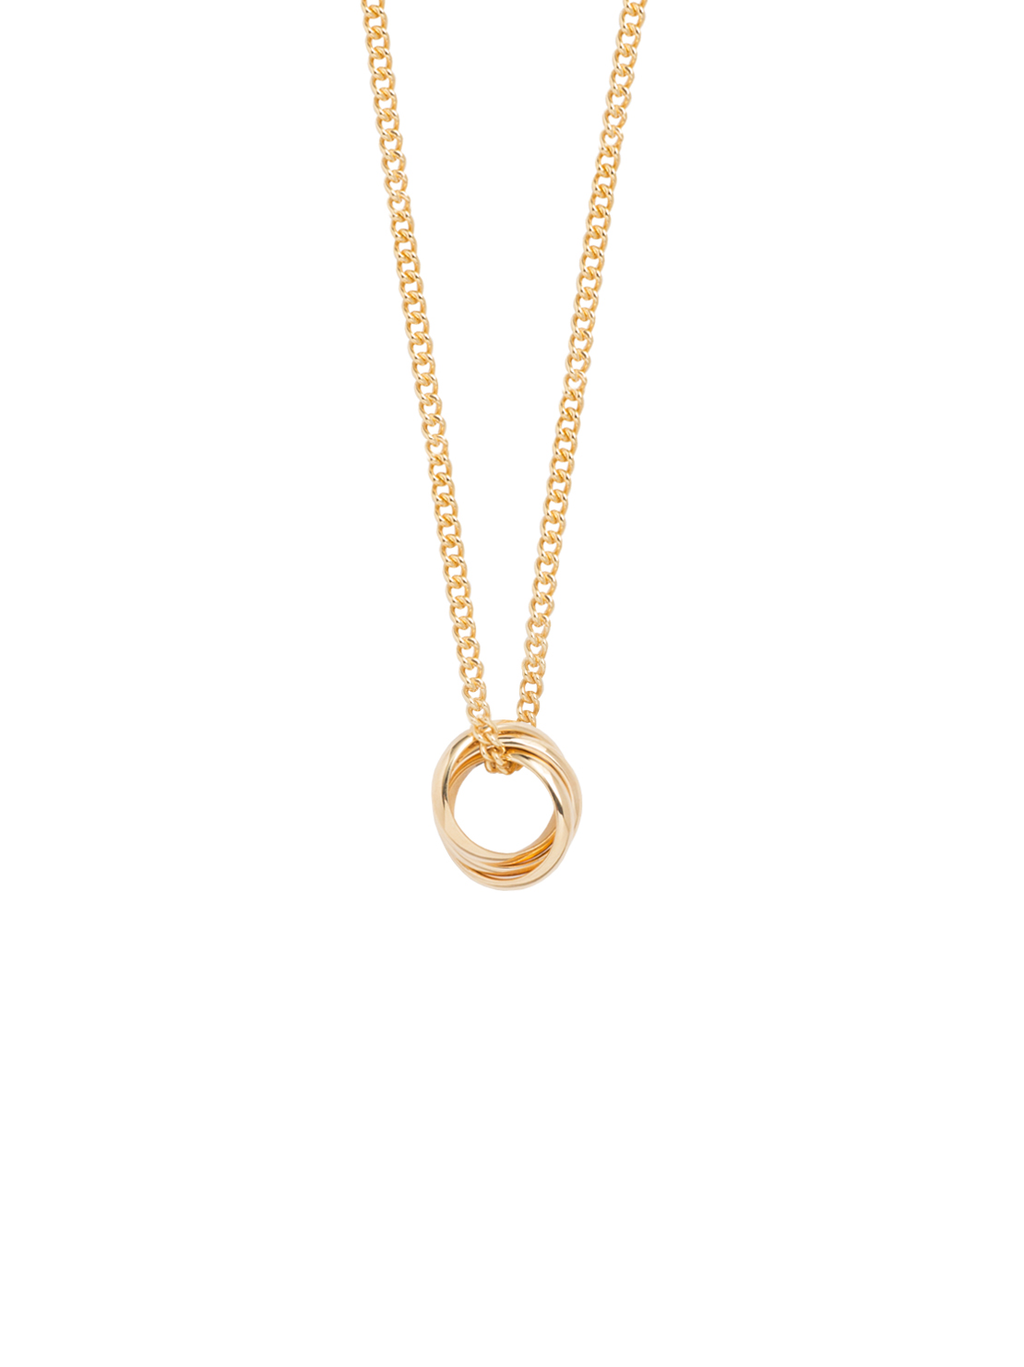 TILLY SVEAAS TINY RUSSIAN WEDDING RING NECKLACE ON CURB CHAIN